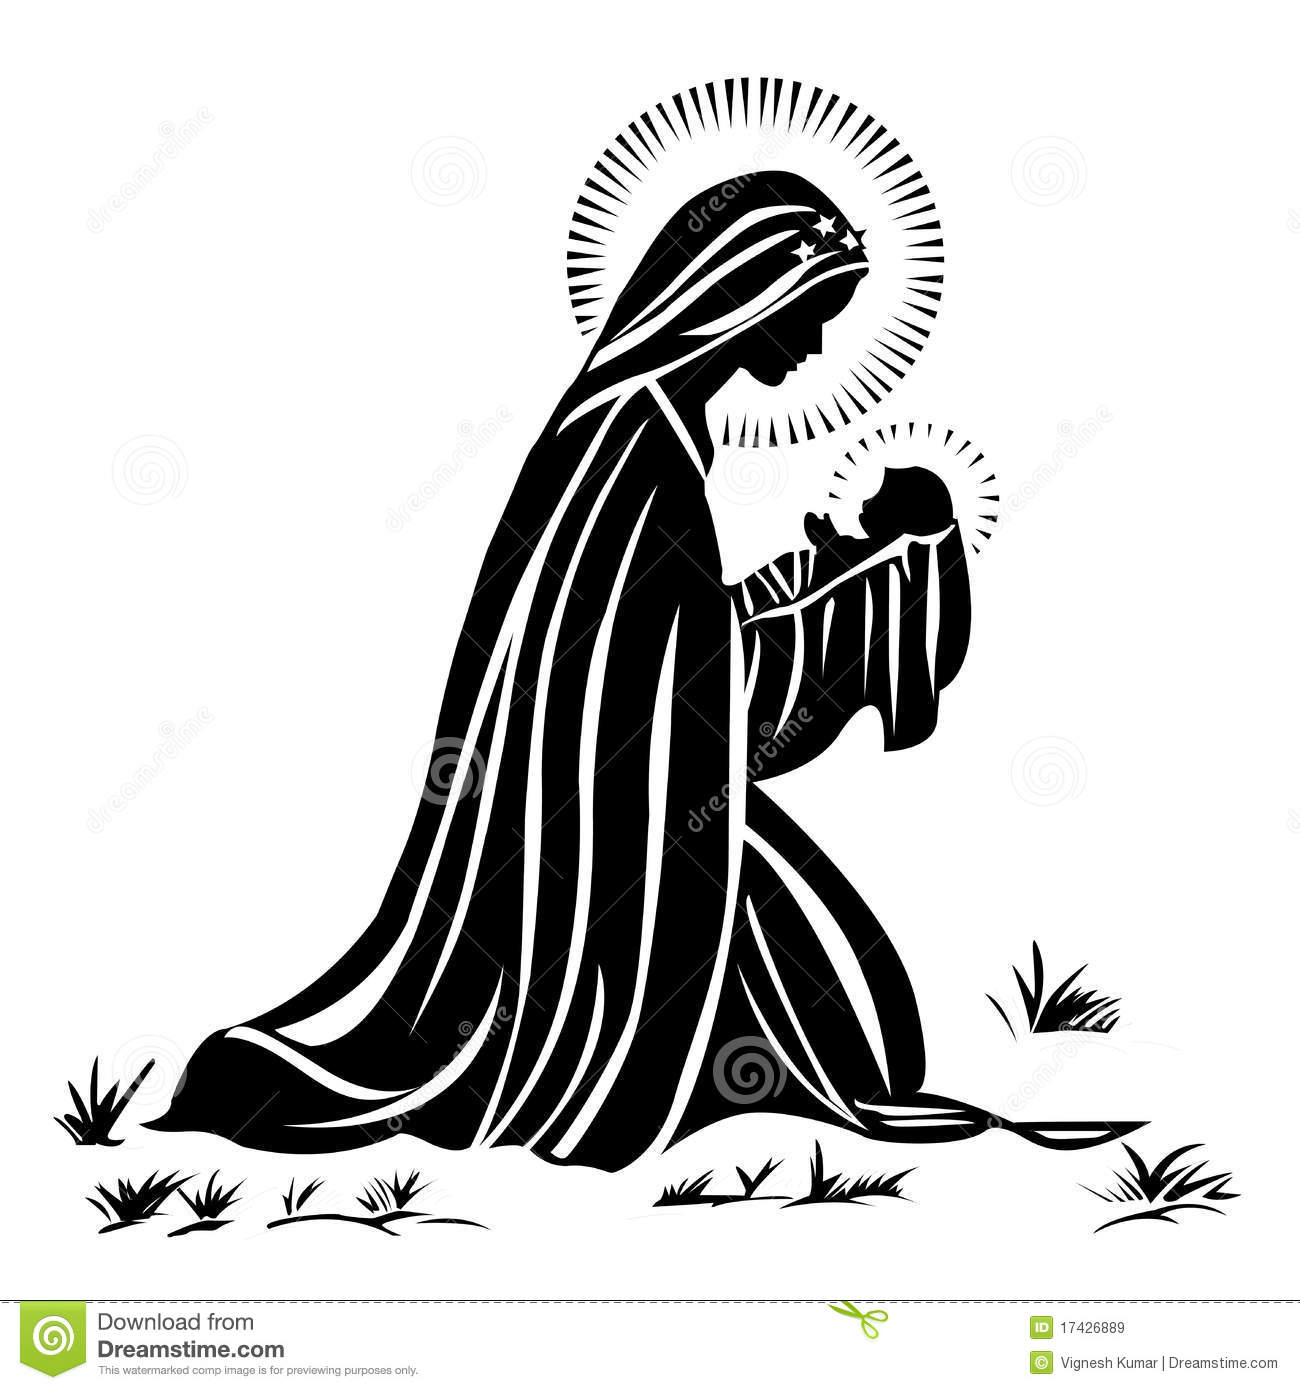 Baby Jesus Black And White Clipart - Clipart Kid